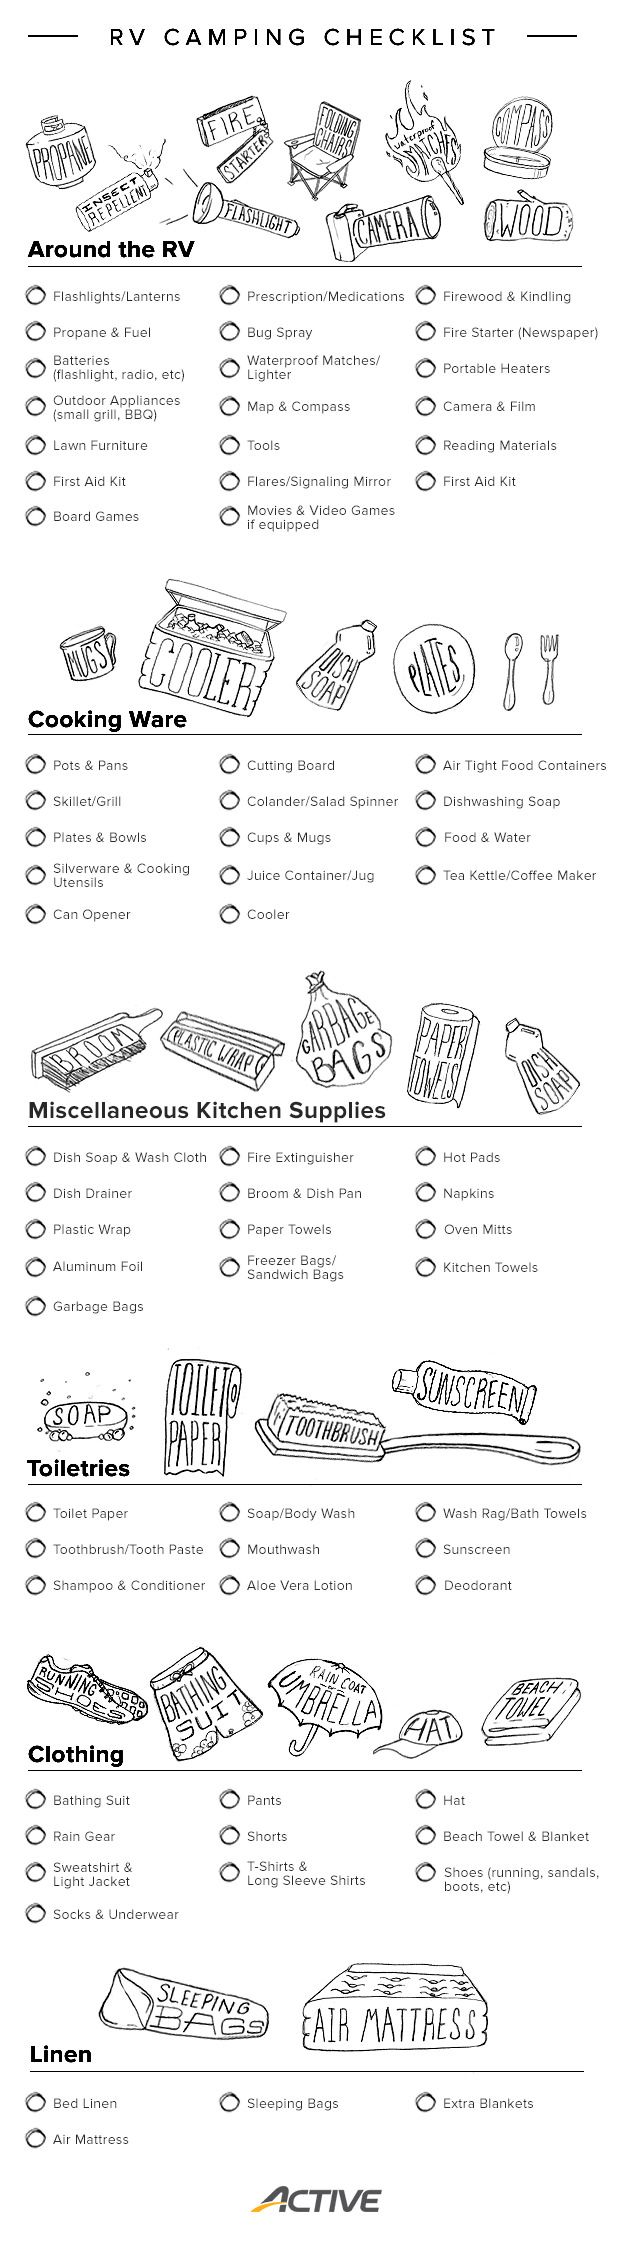 Sharing a printable list of essentials when you go RVIng so you don't get a facepalm when you forget something.